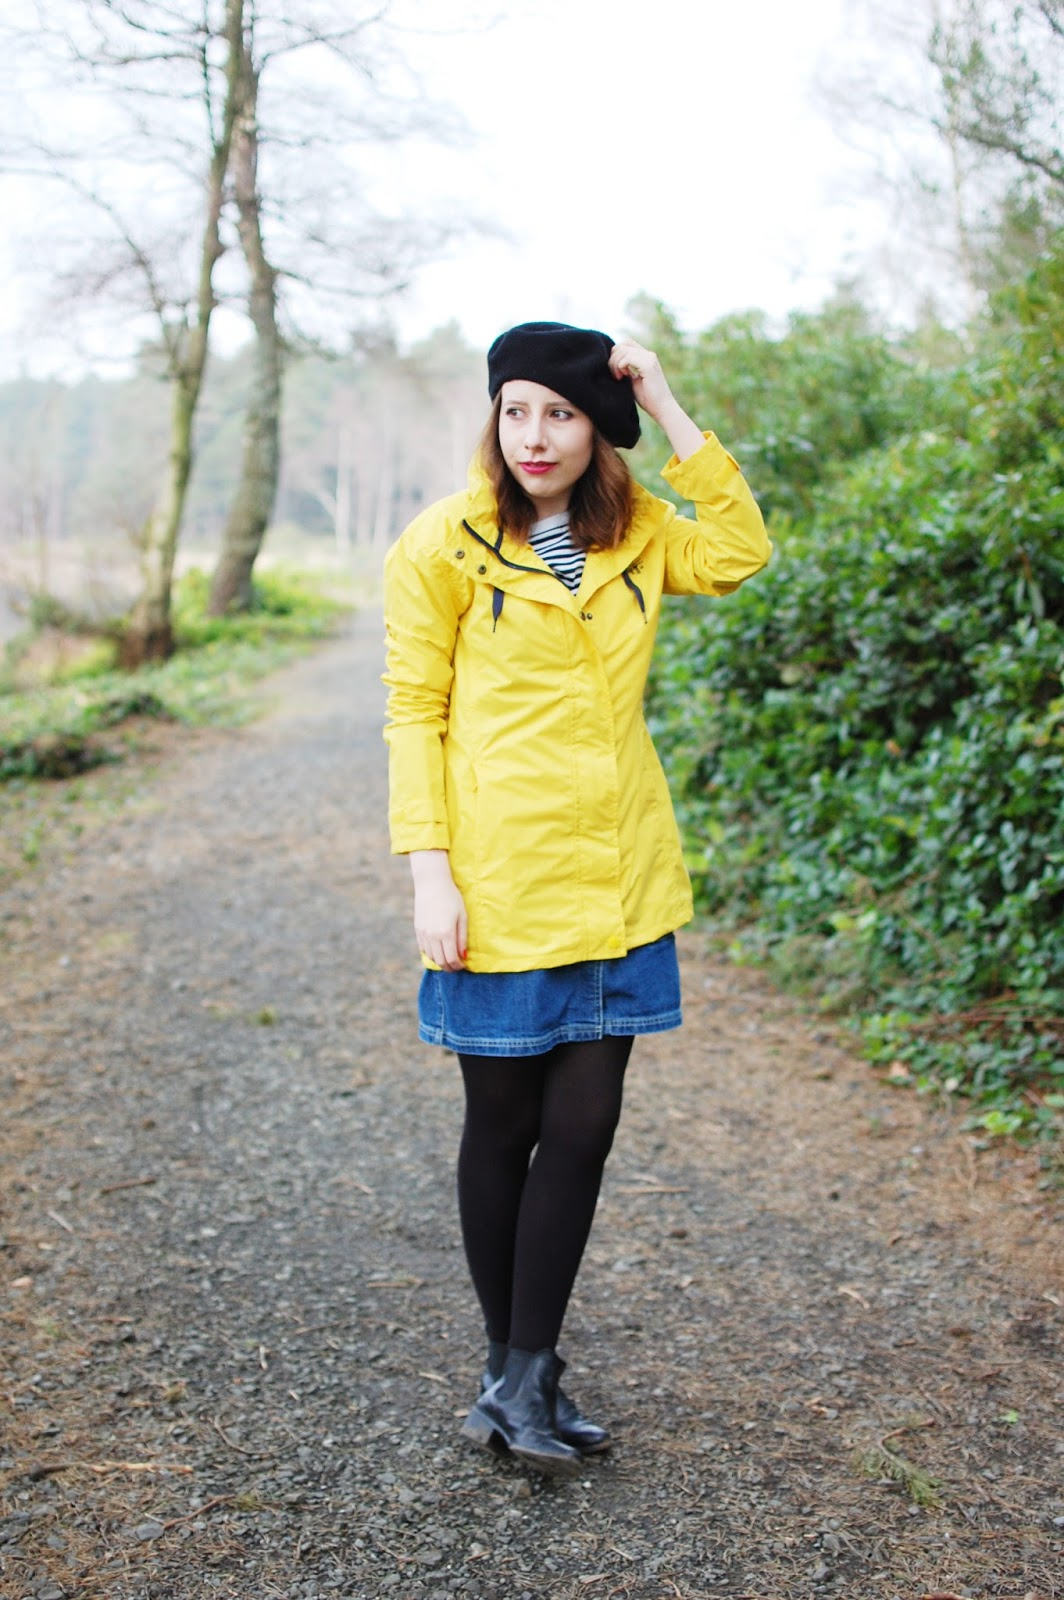 A Rather Yellow Raincoat